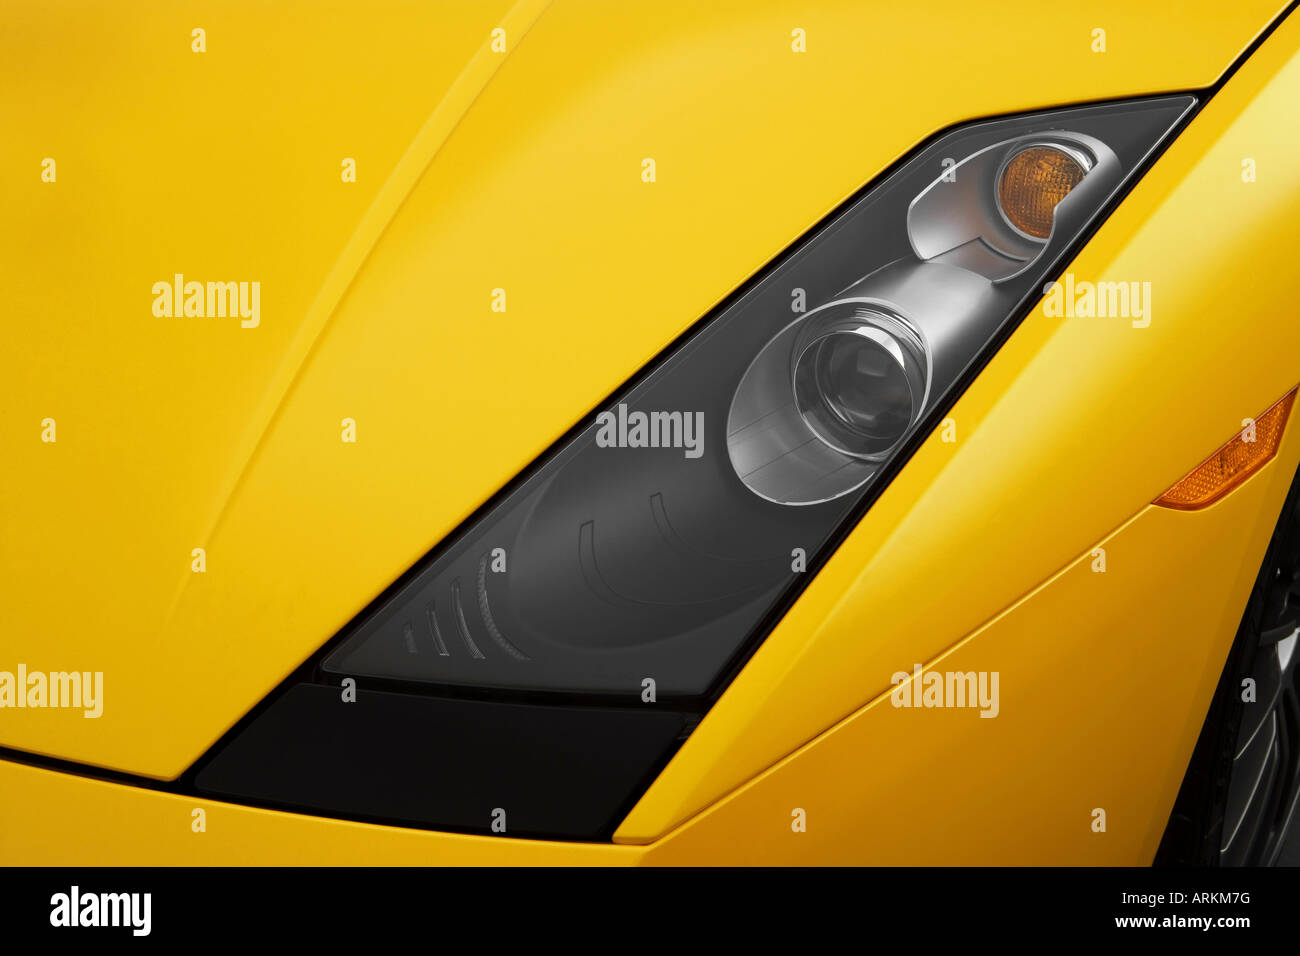 2008 Lamborghini Gallardo Superleggera In Yellow Headlight Stock